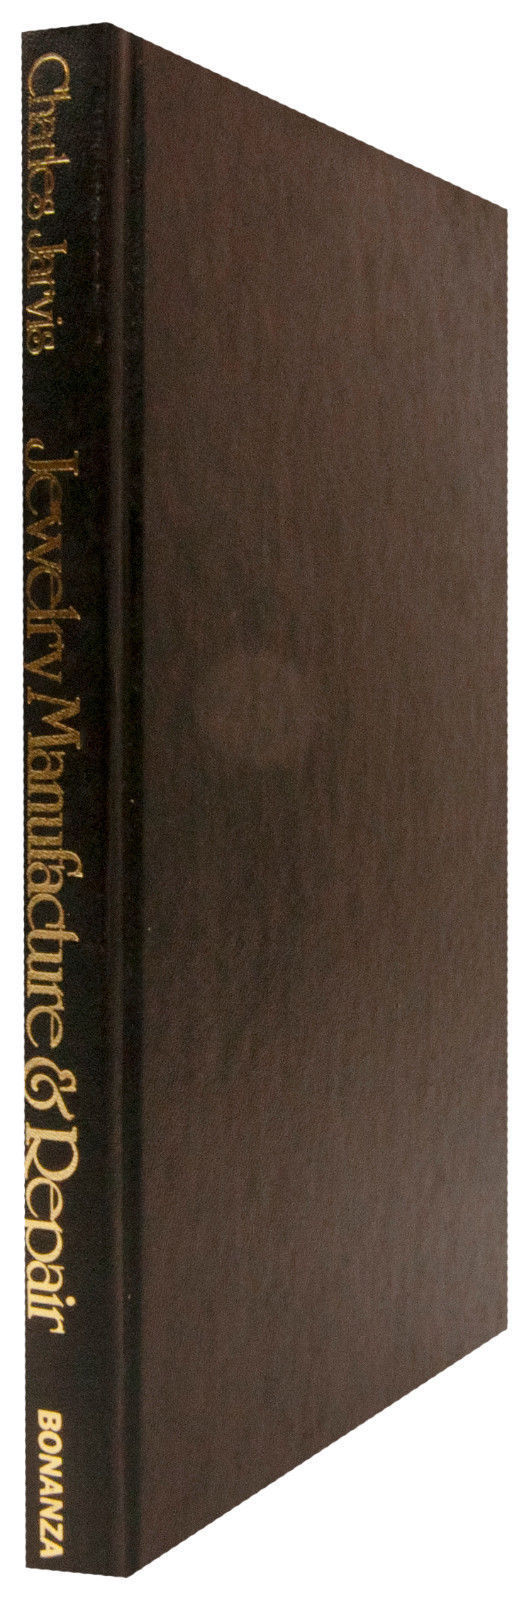 Jewelry Manufacture & Repair (HC) Charles Jarvis 1979